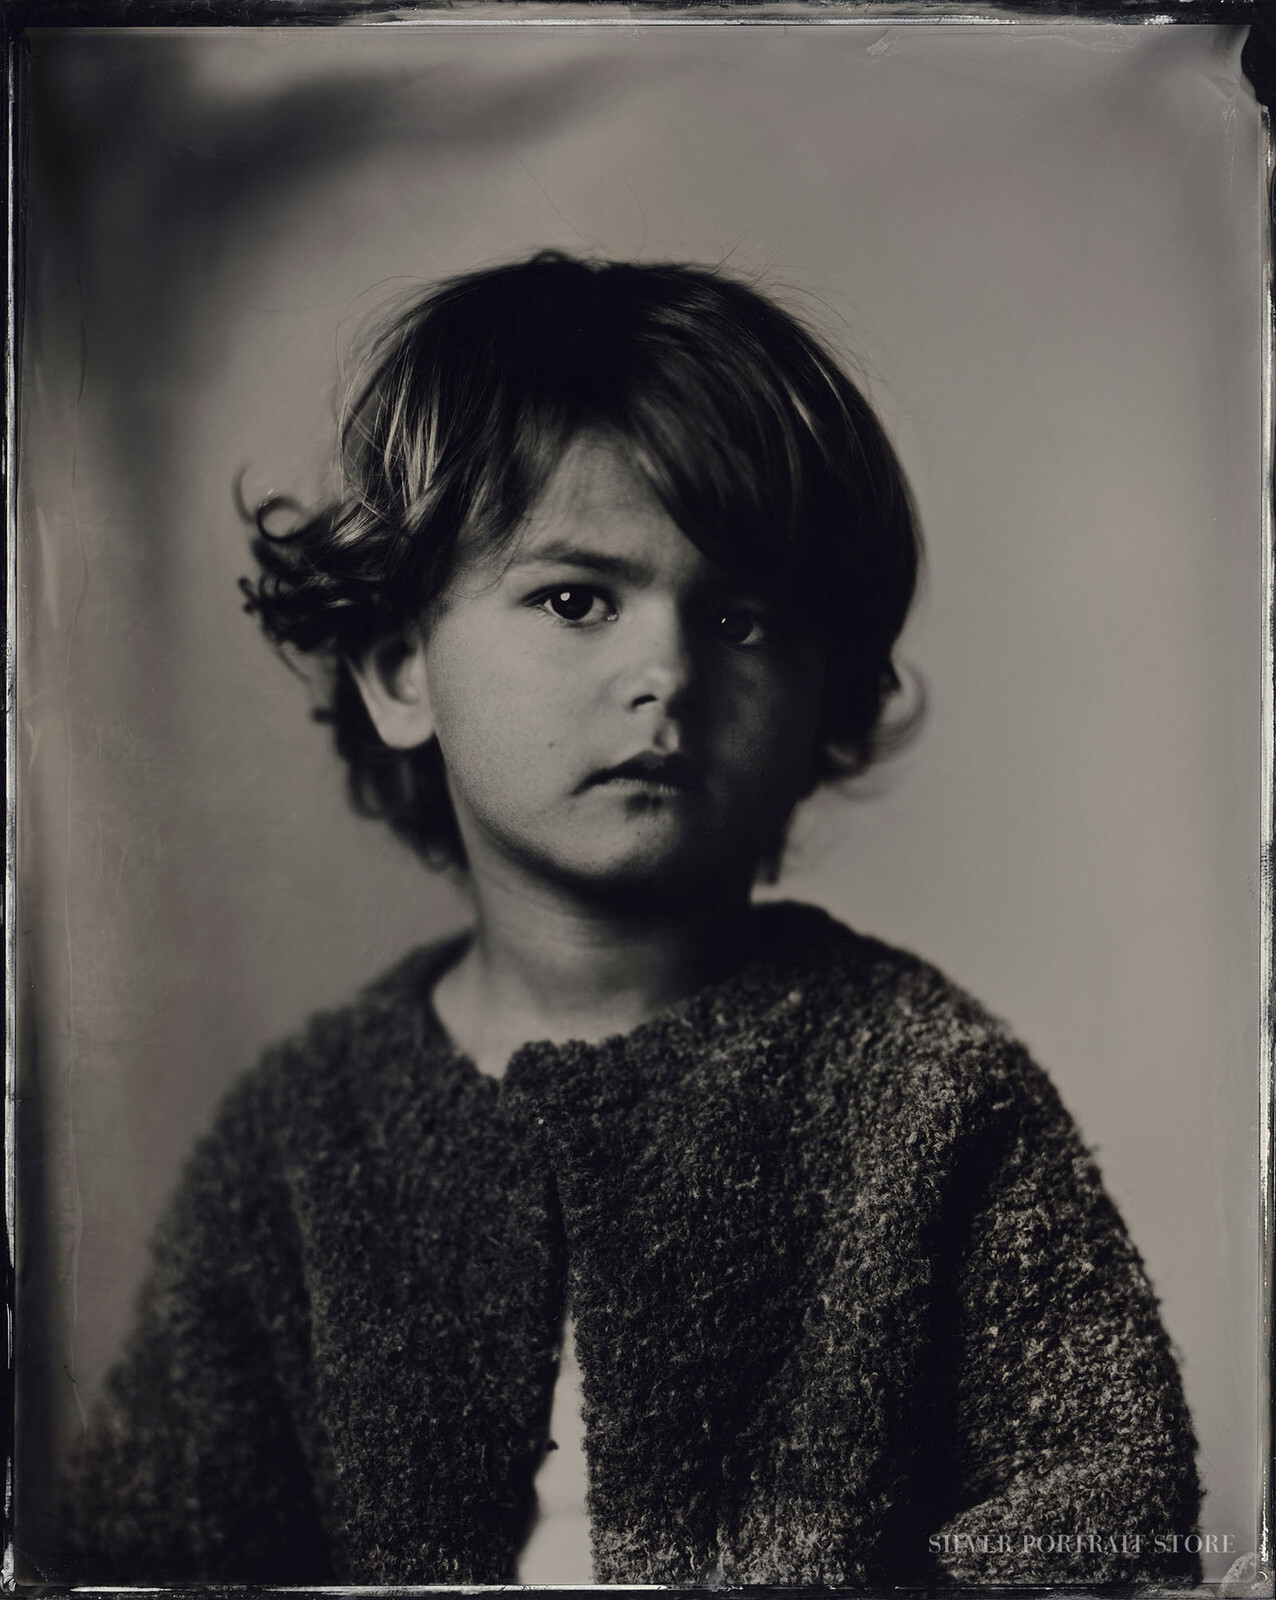 Tess-Silver Portrait Store-Wet plate collodion-Tintype 20 x 25 cm.